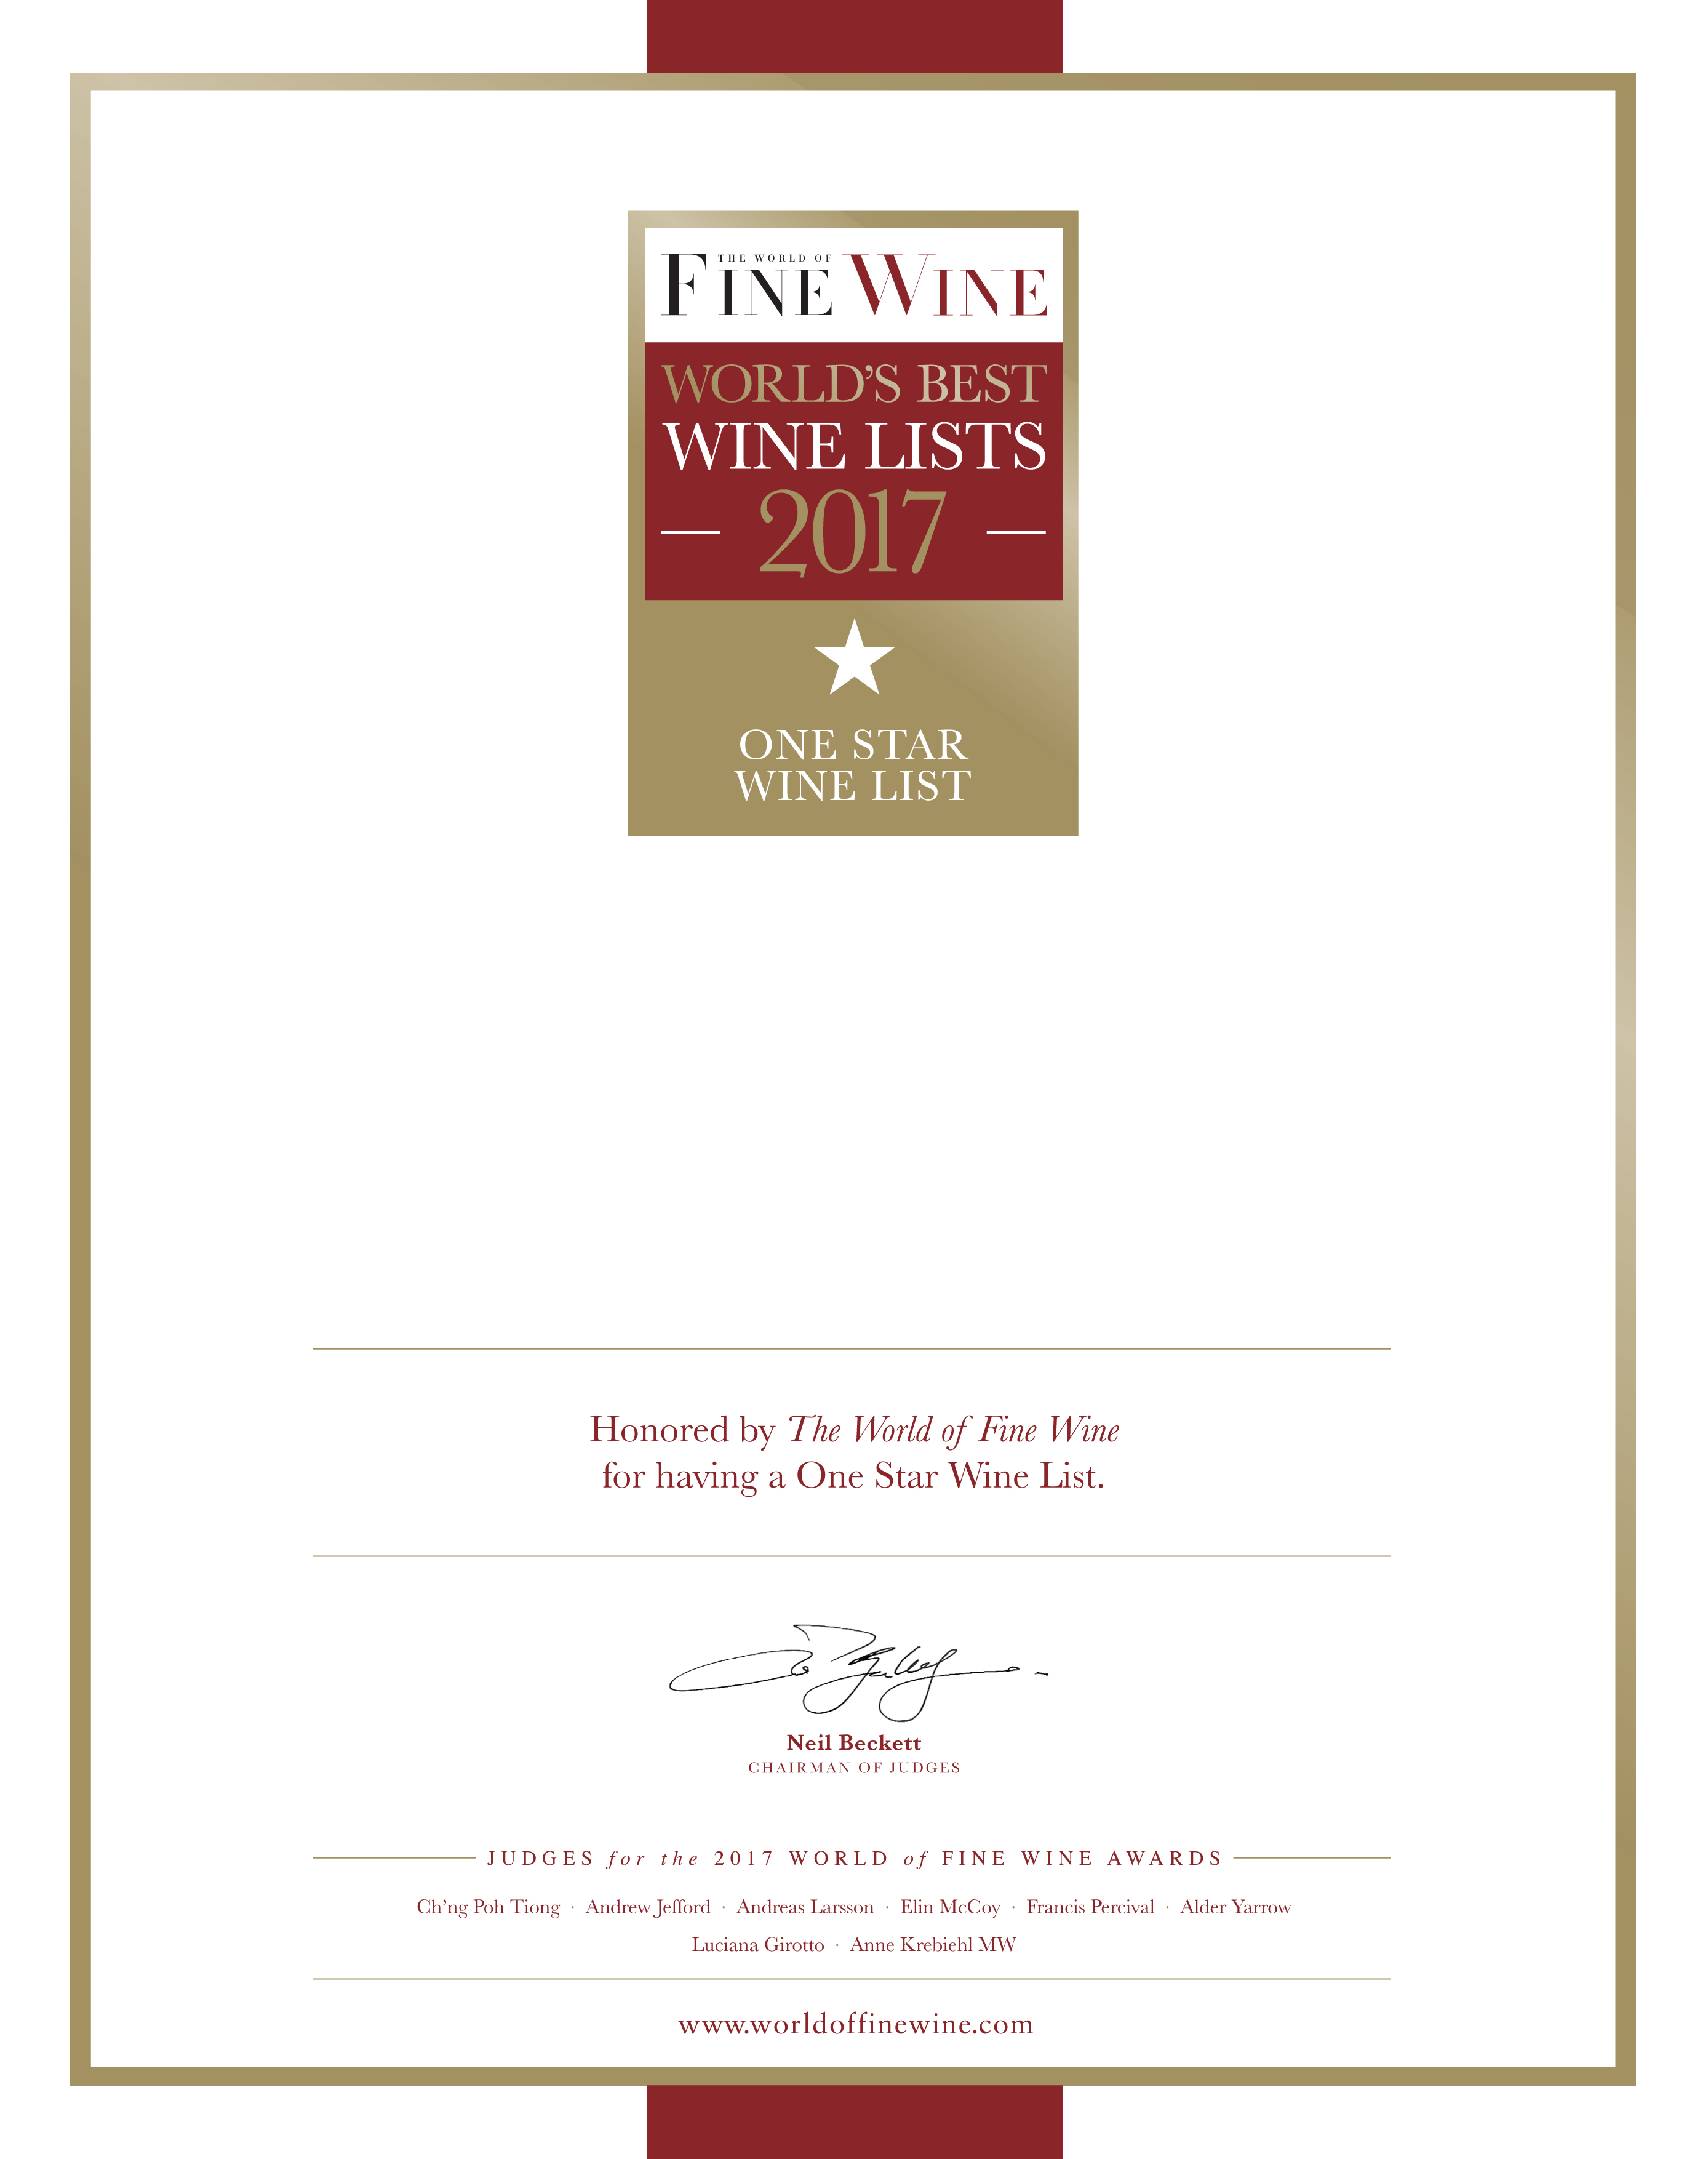 WFW_One_Star_Wine_List_2016_Certificate